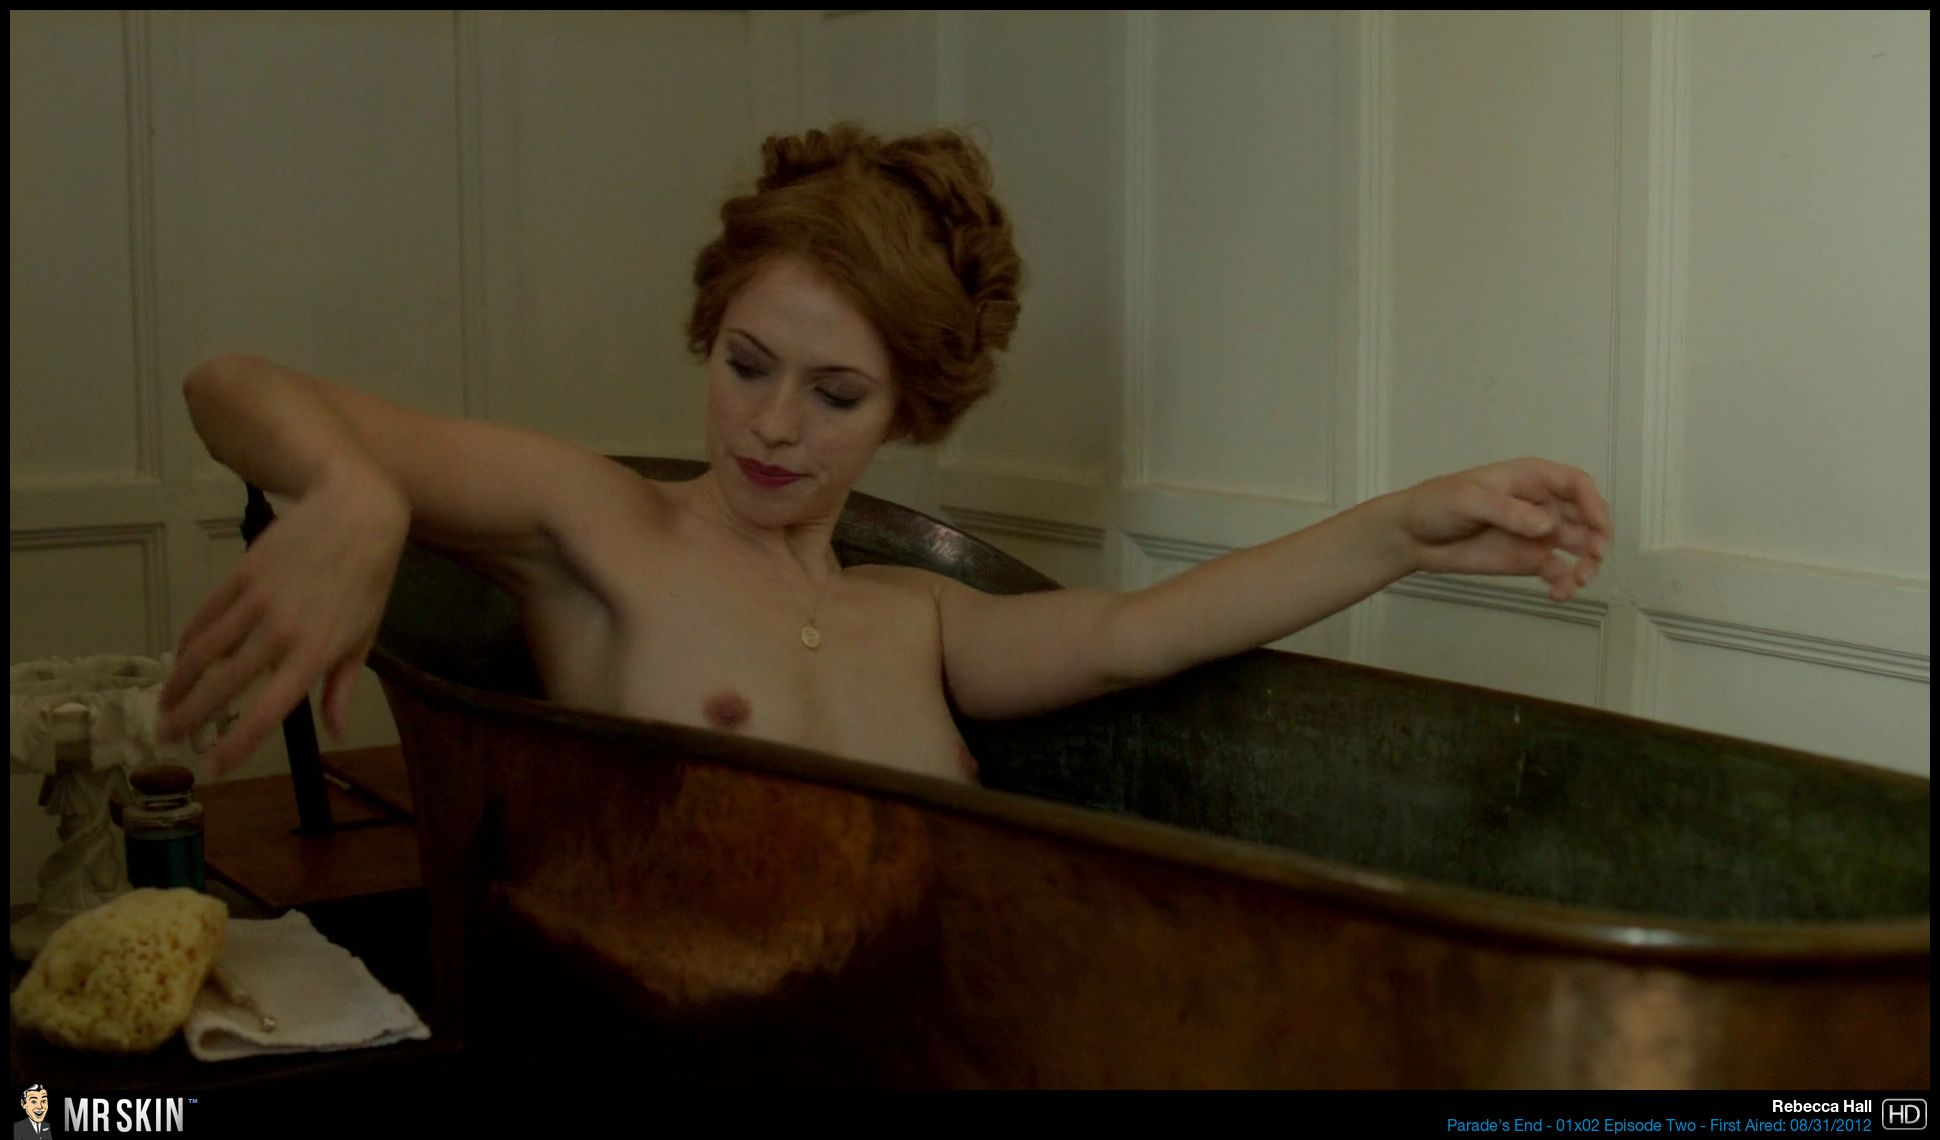 Rebecca Hall Nude Sex Images